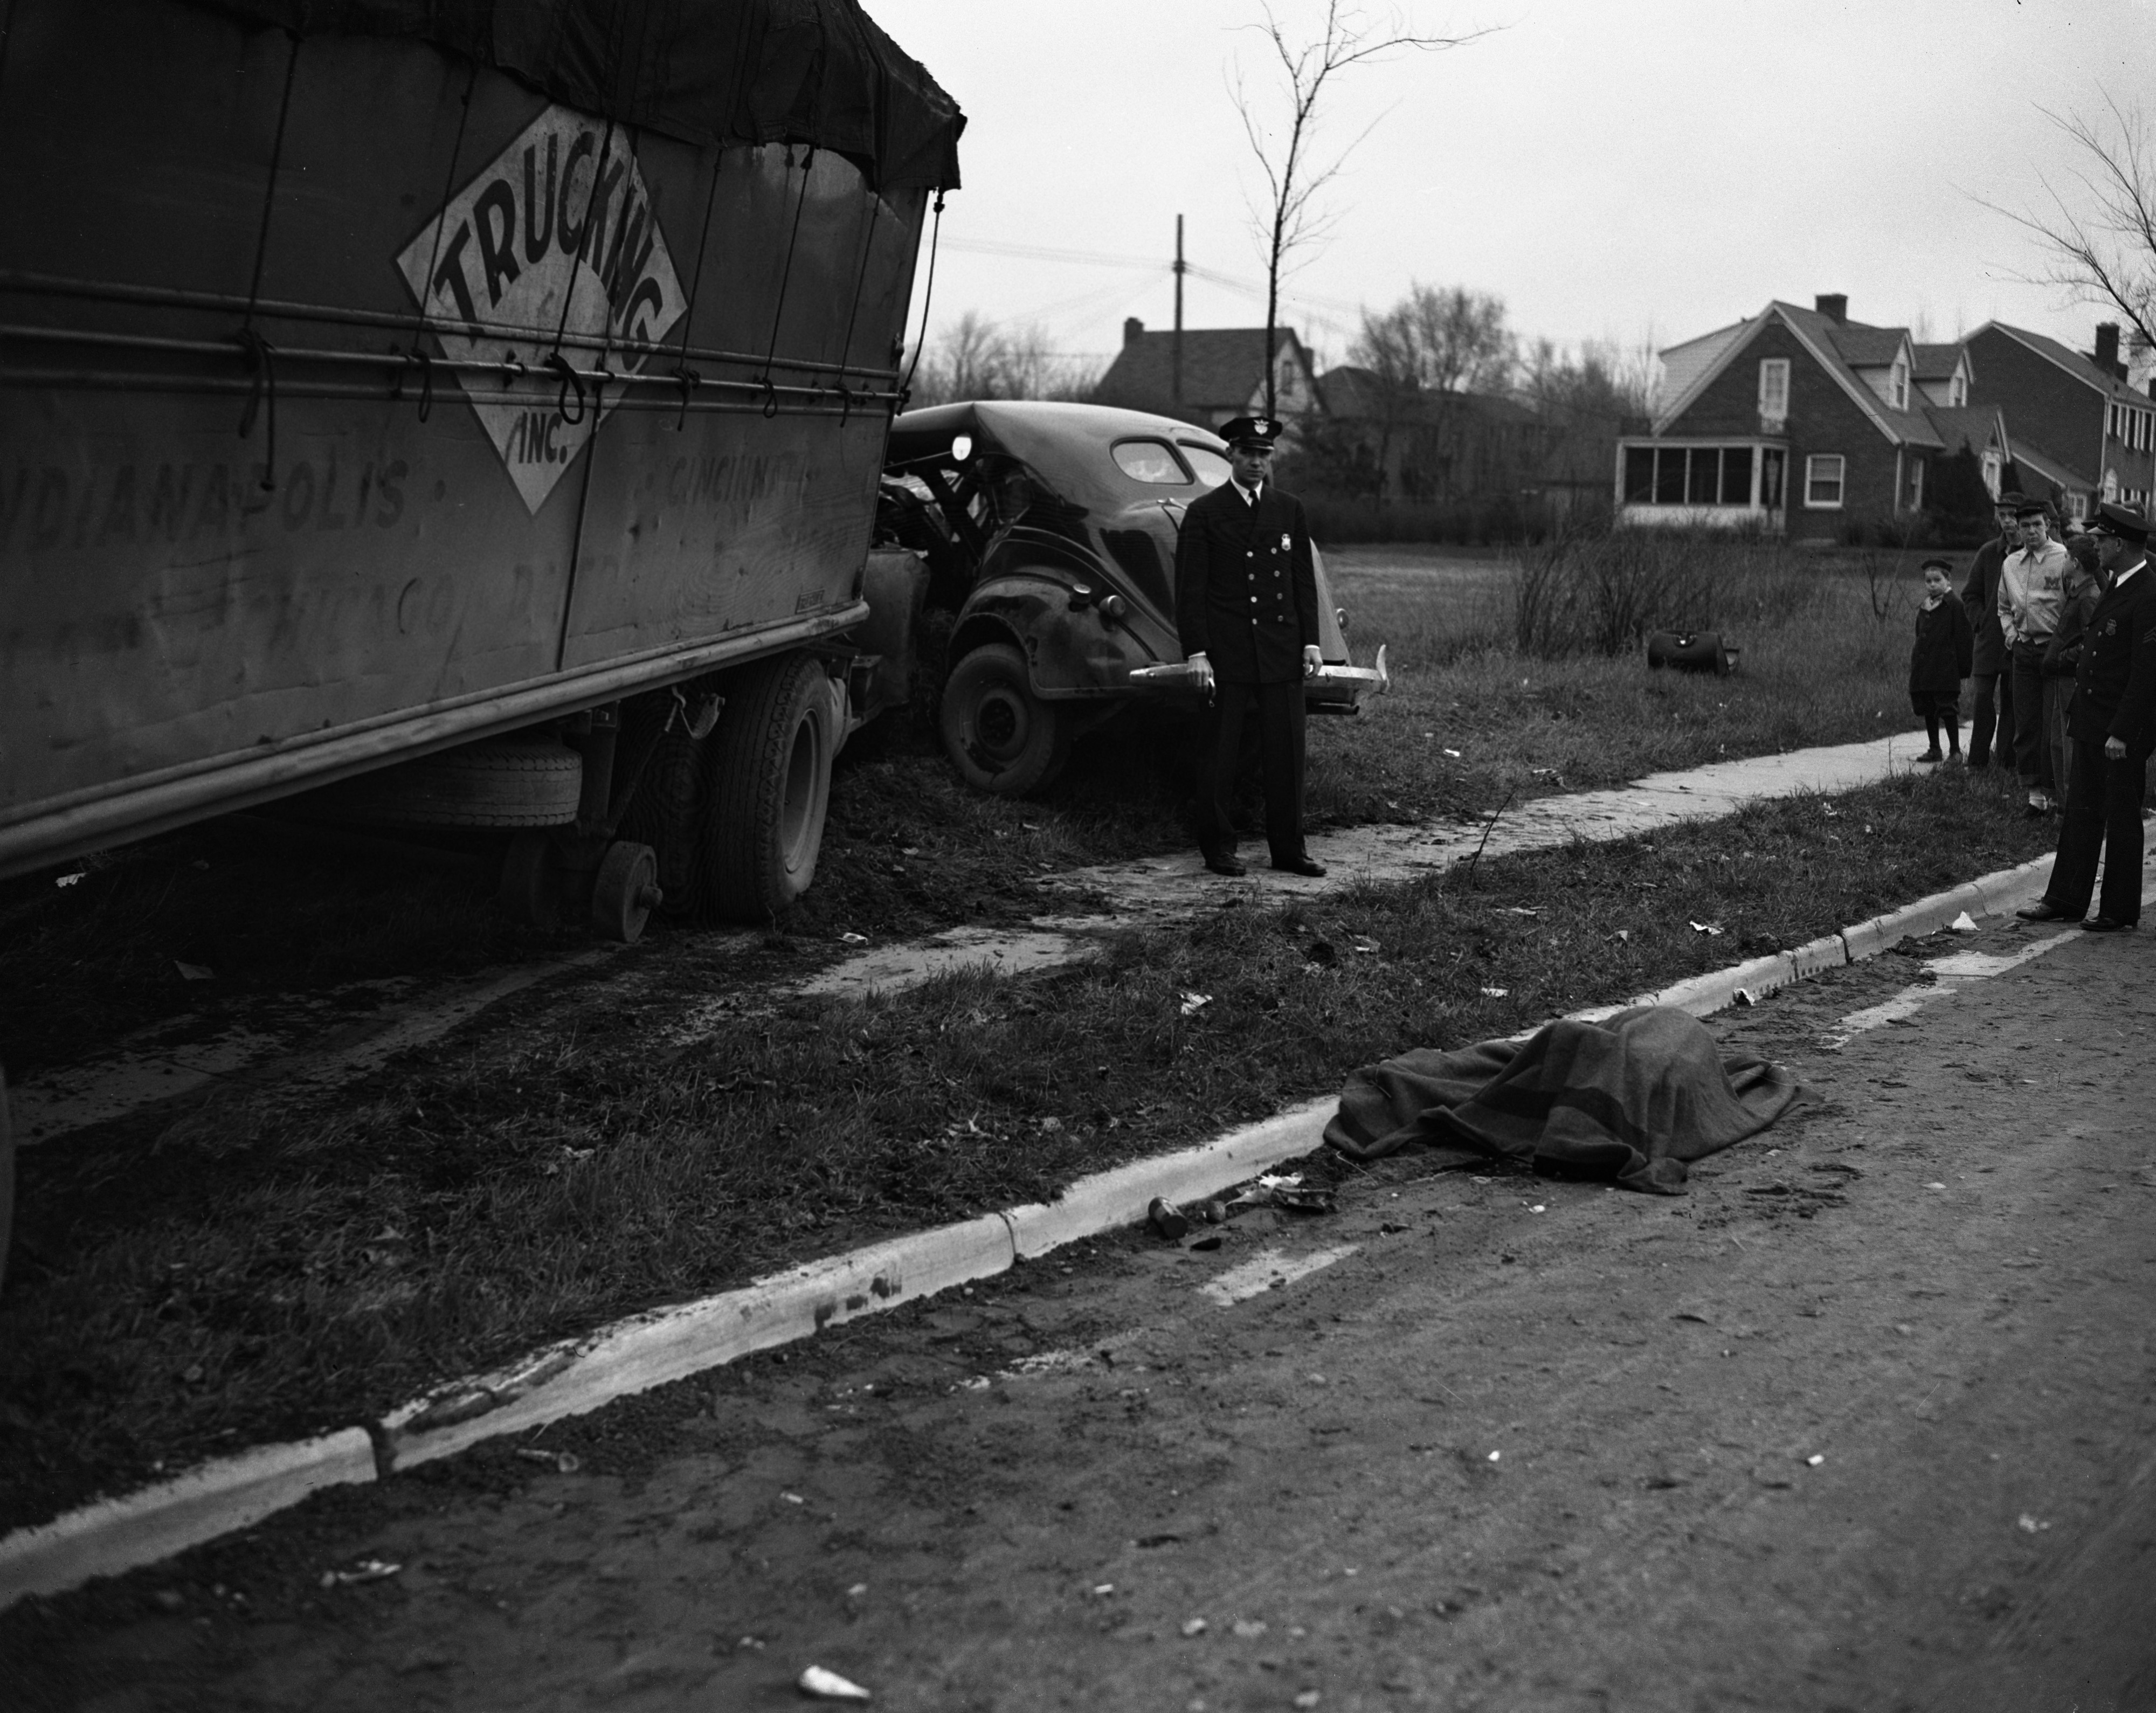 Ann Arbor Police at Scene of Fatal Wreck at Packard and Stadium, April 1944 image